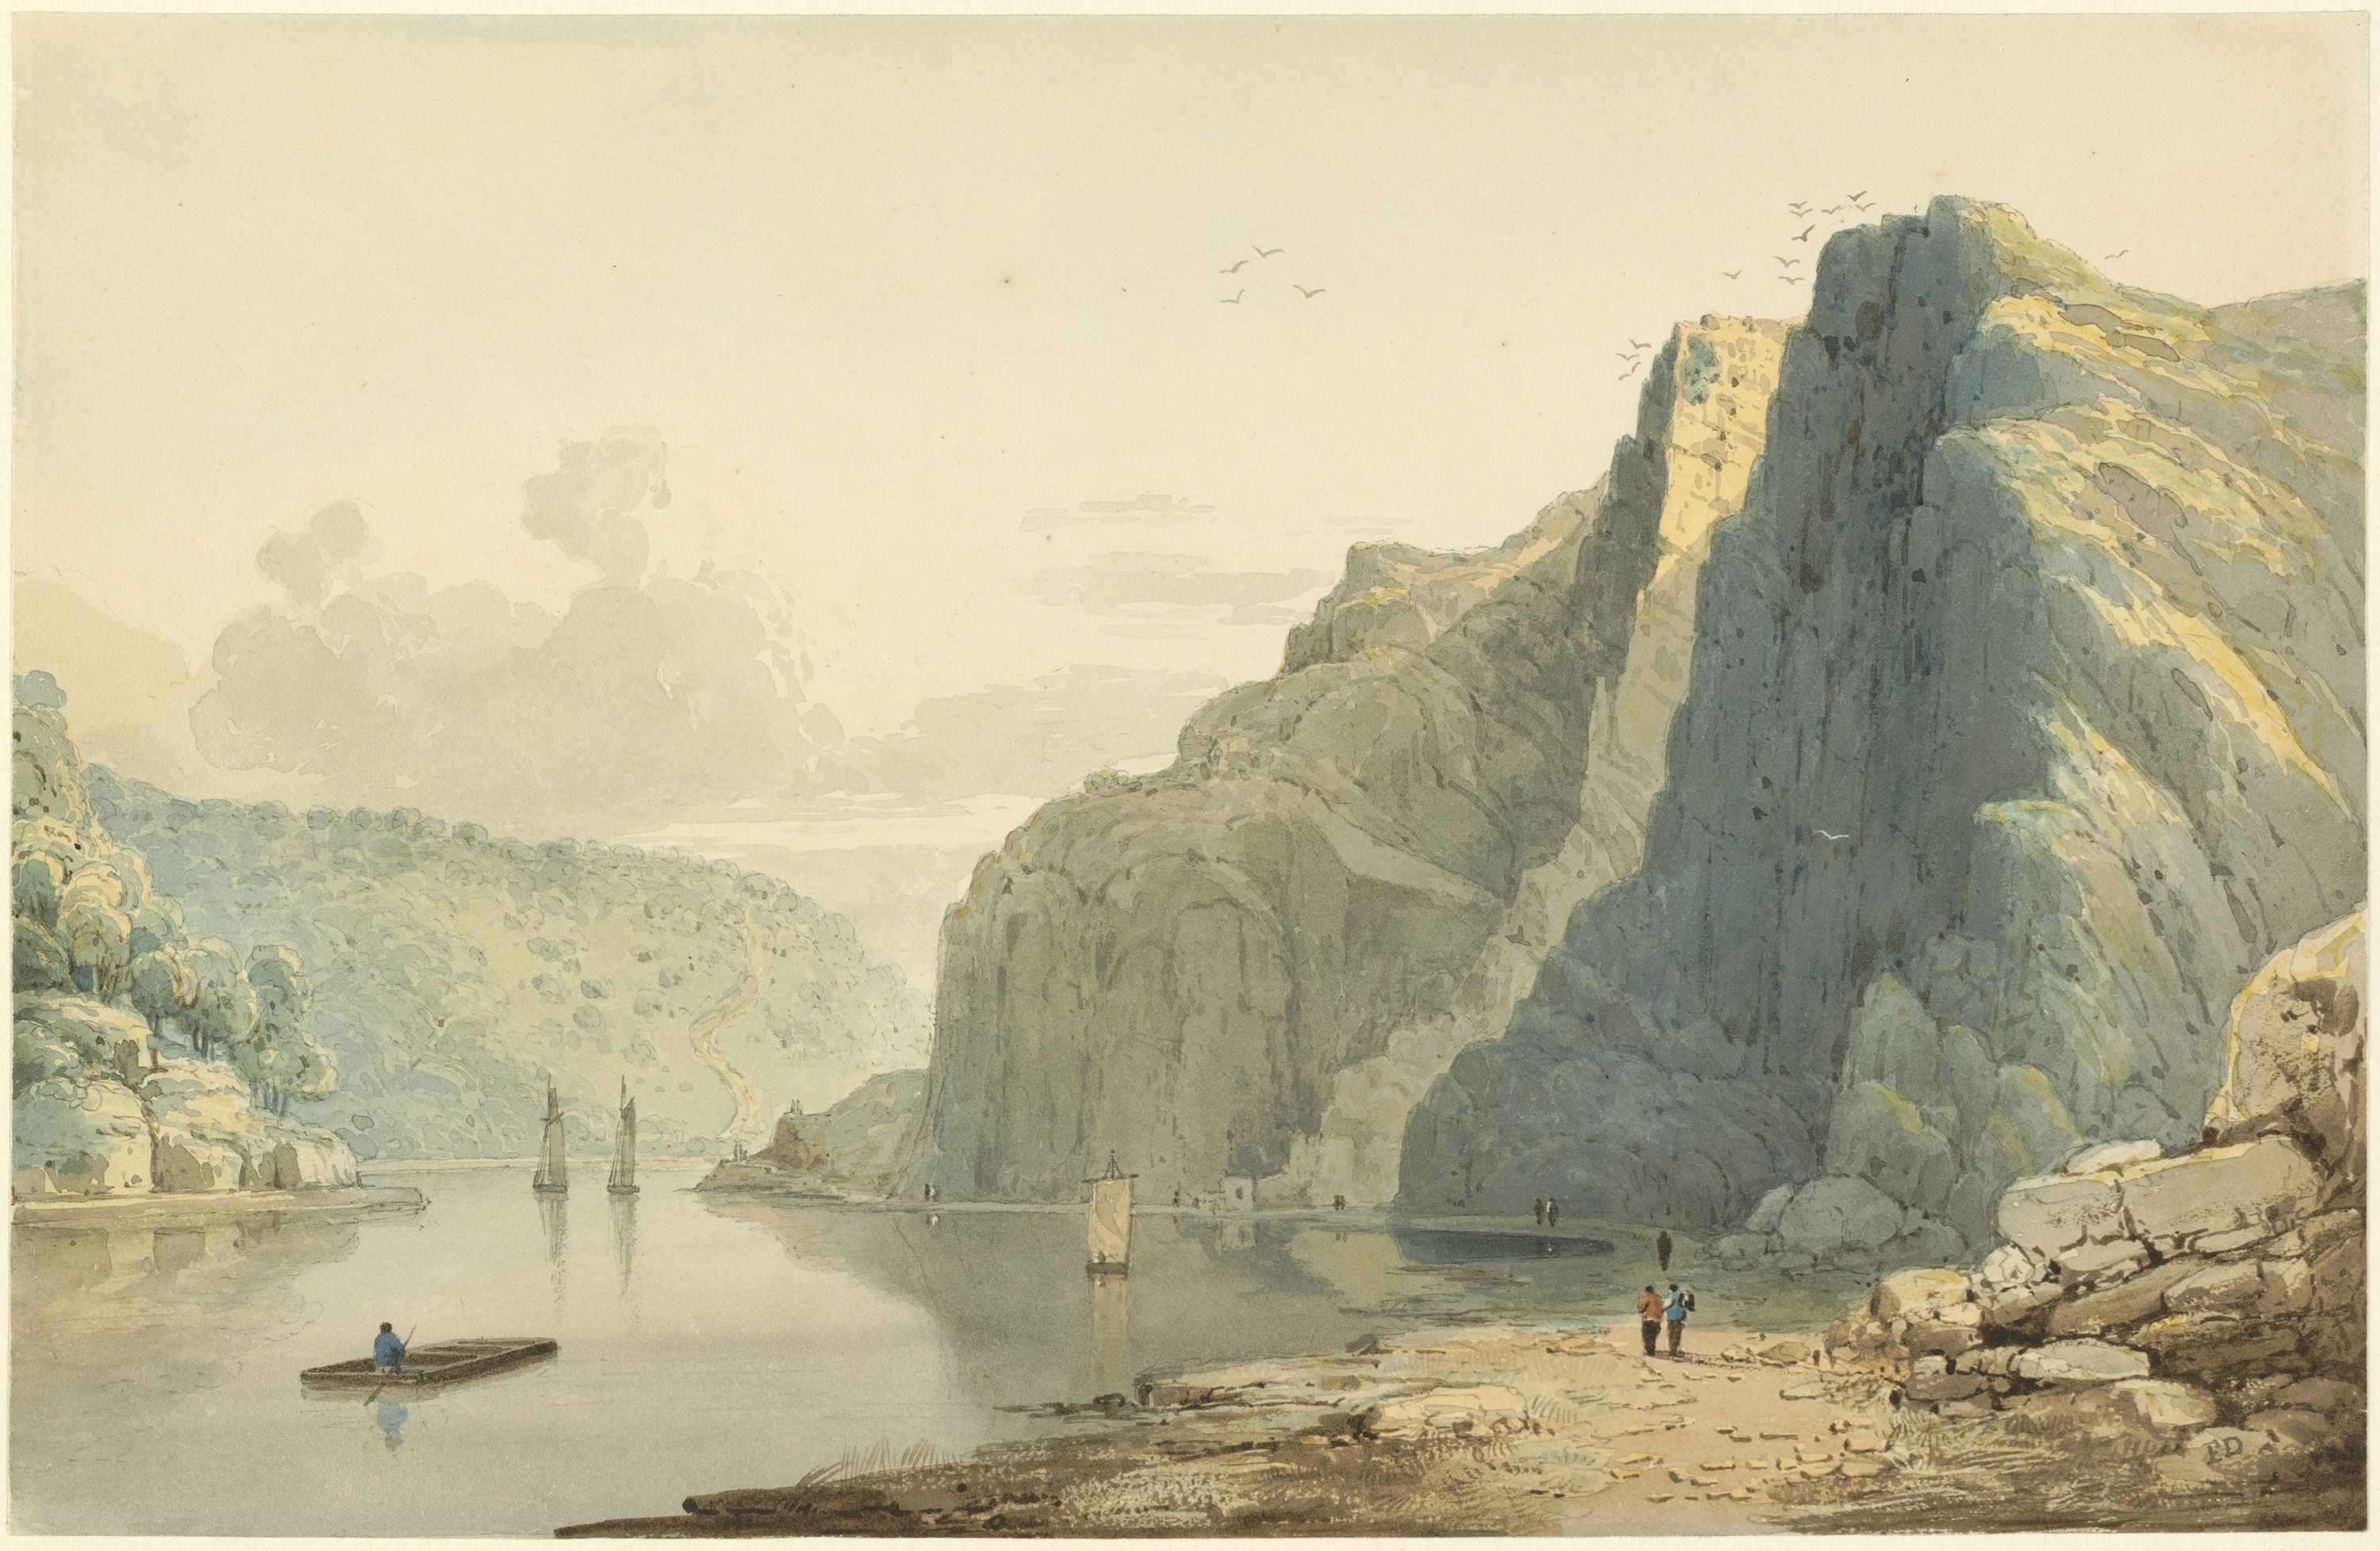 Francis Danby 'saint Vincent' Rocks And Avon Gorge